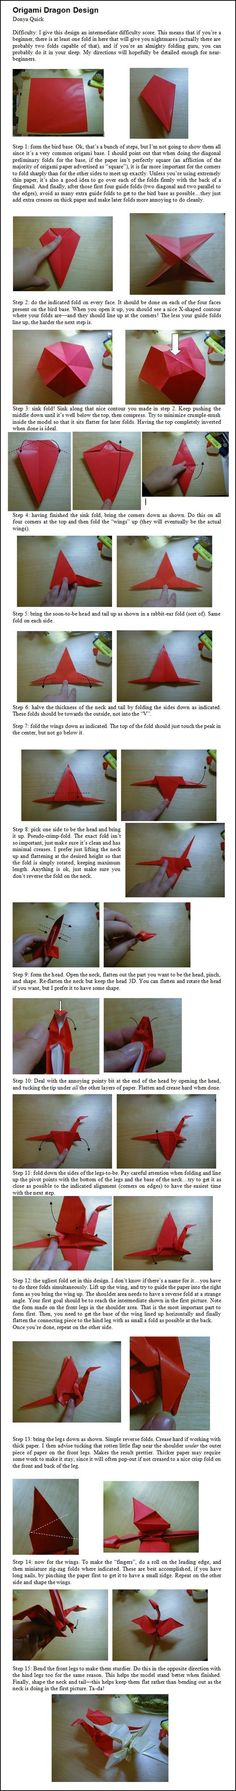 Origami Dragon Design Folding Instructions | Origami Instruction